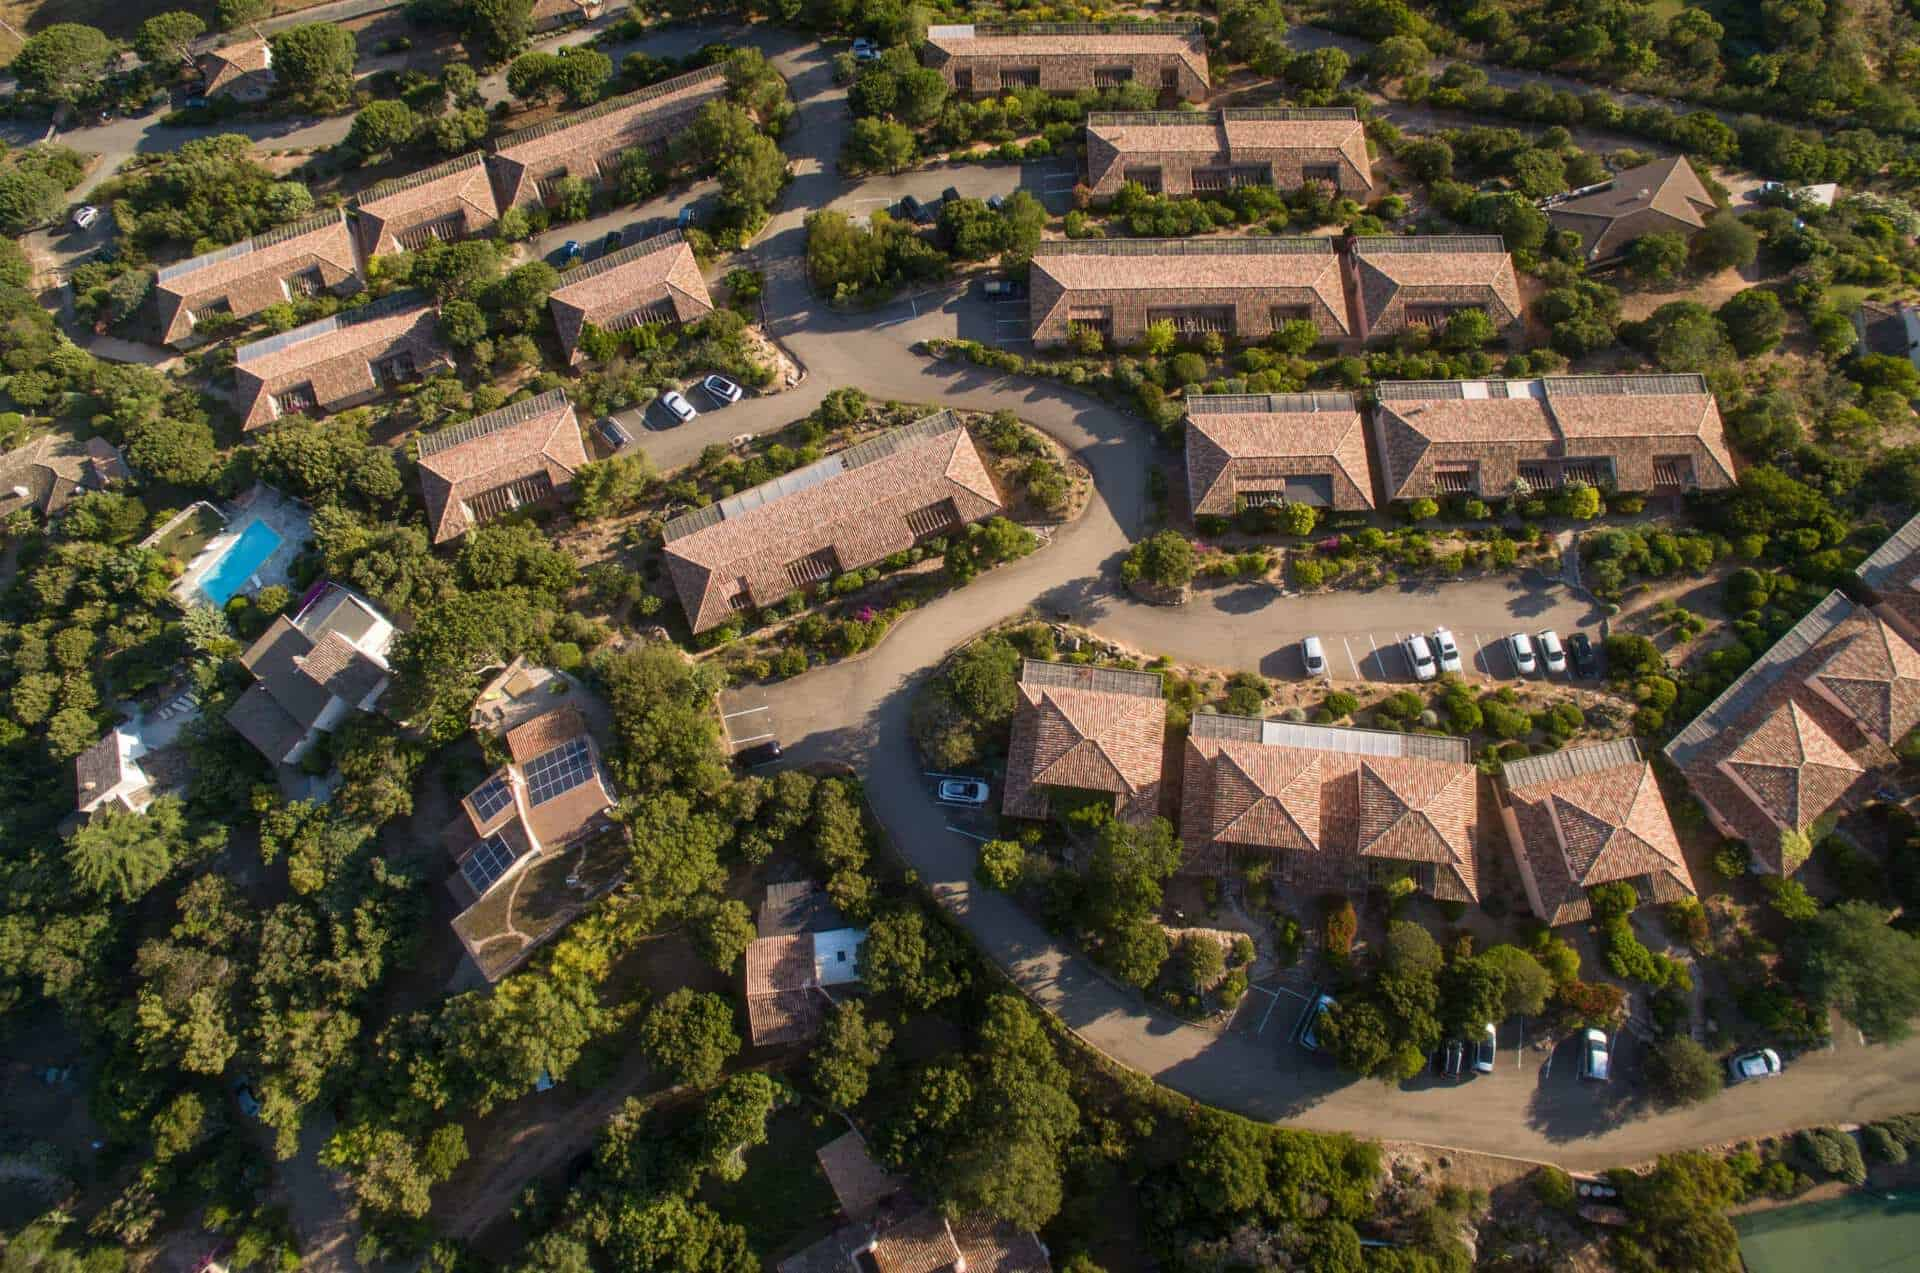 Aerial view of a nice neighborhood on a sunny day.